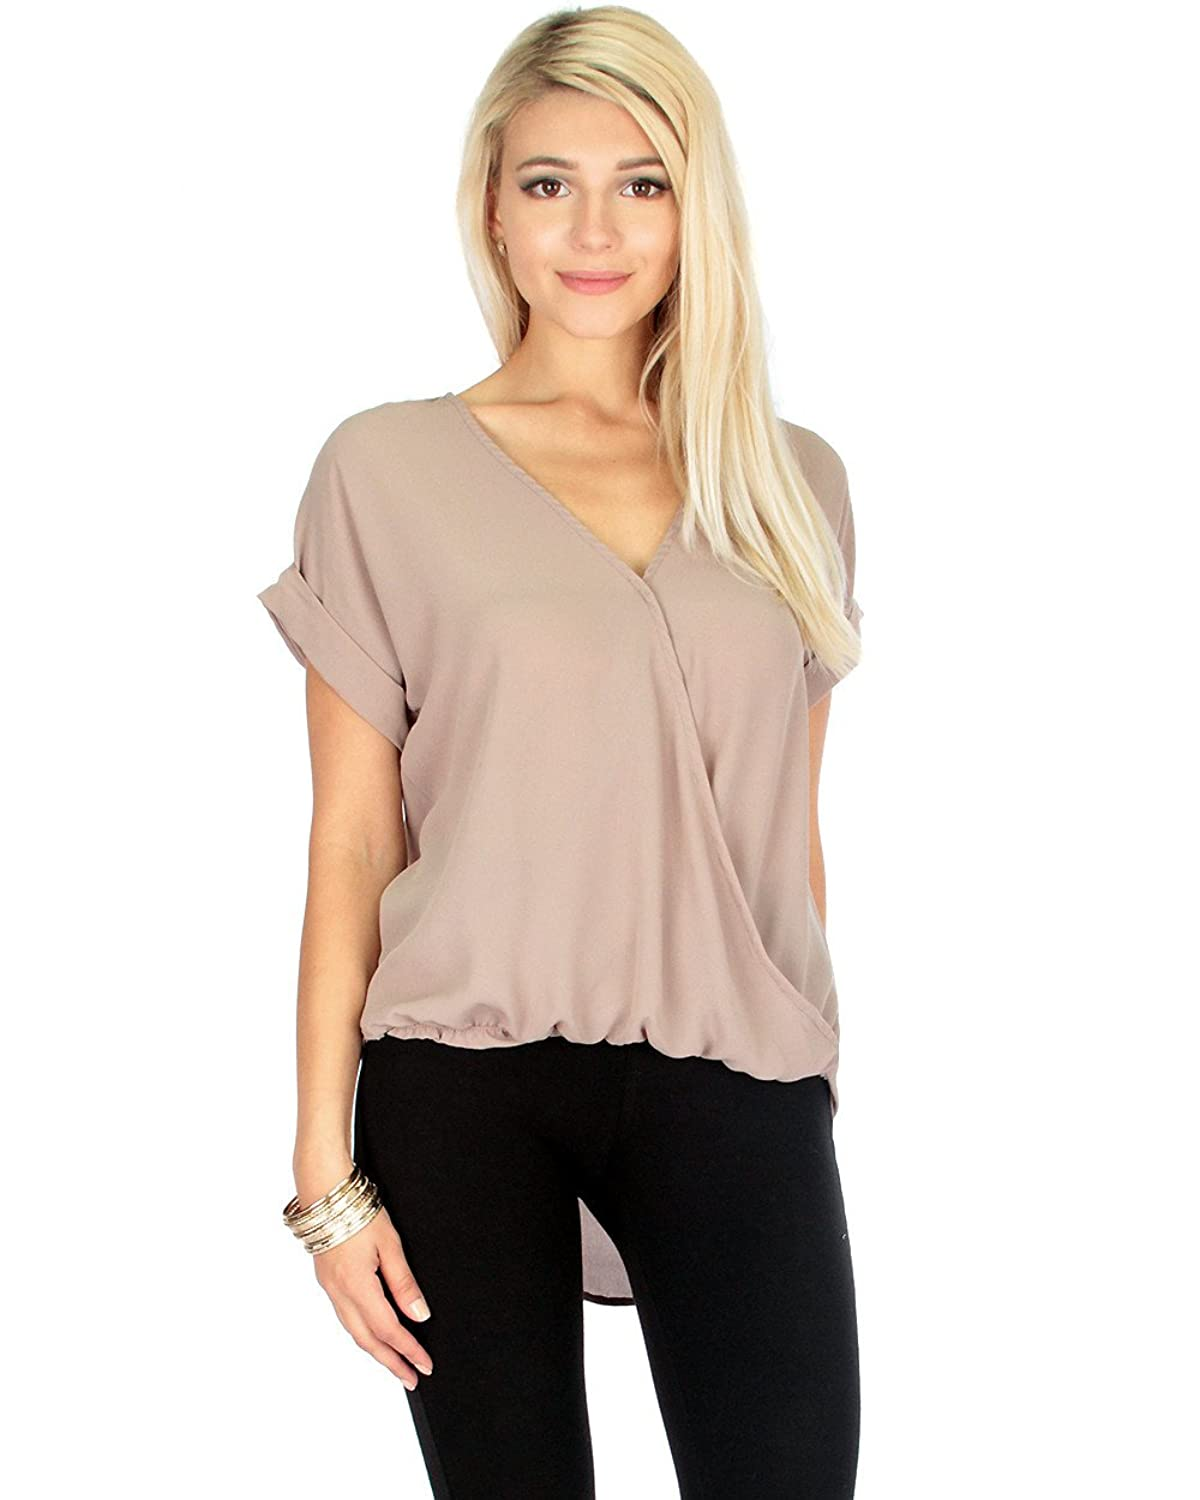 Lyss Loo Women's Wrap Star Hi-Low Front Twist Woven Blouse Top Shirt